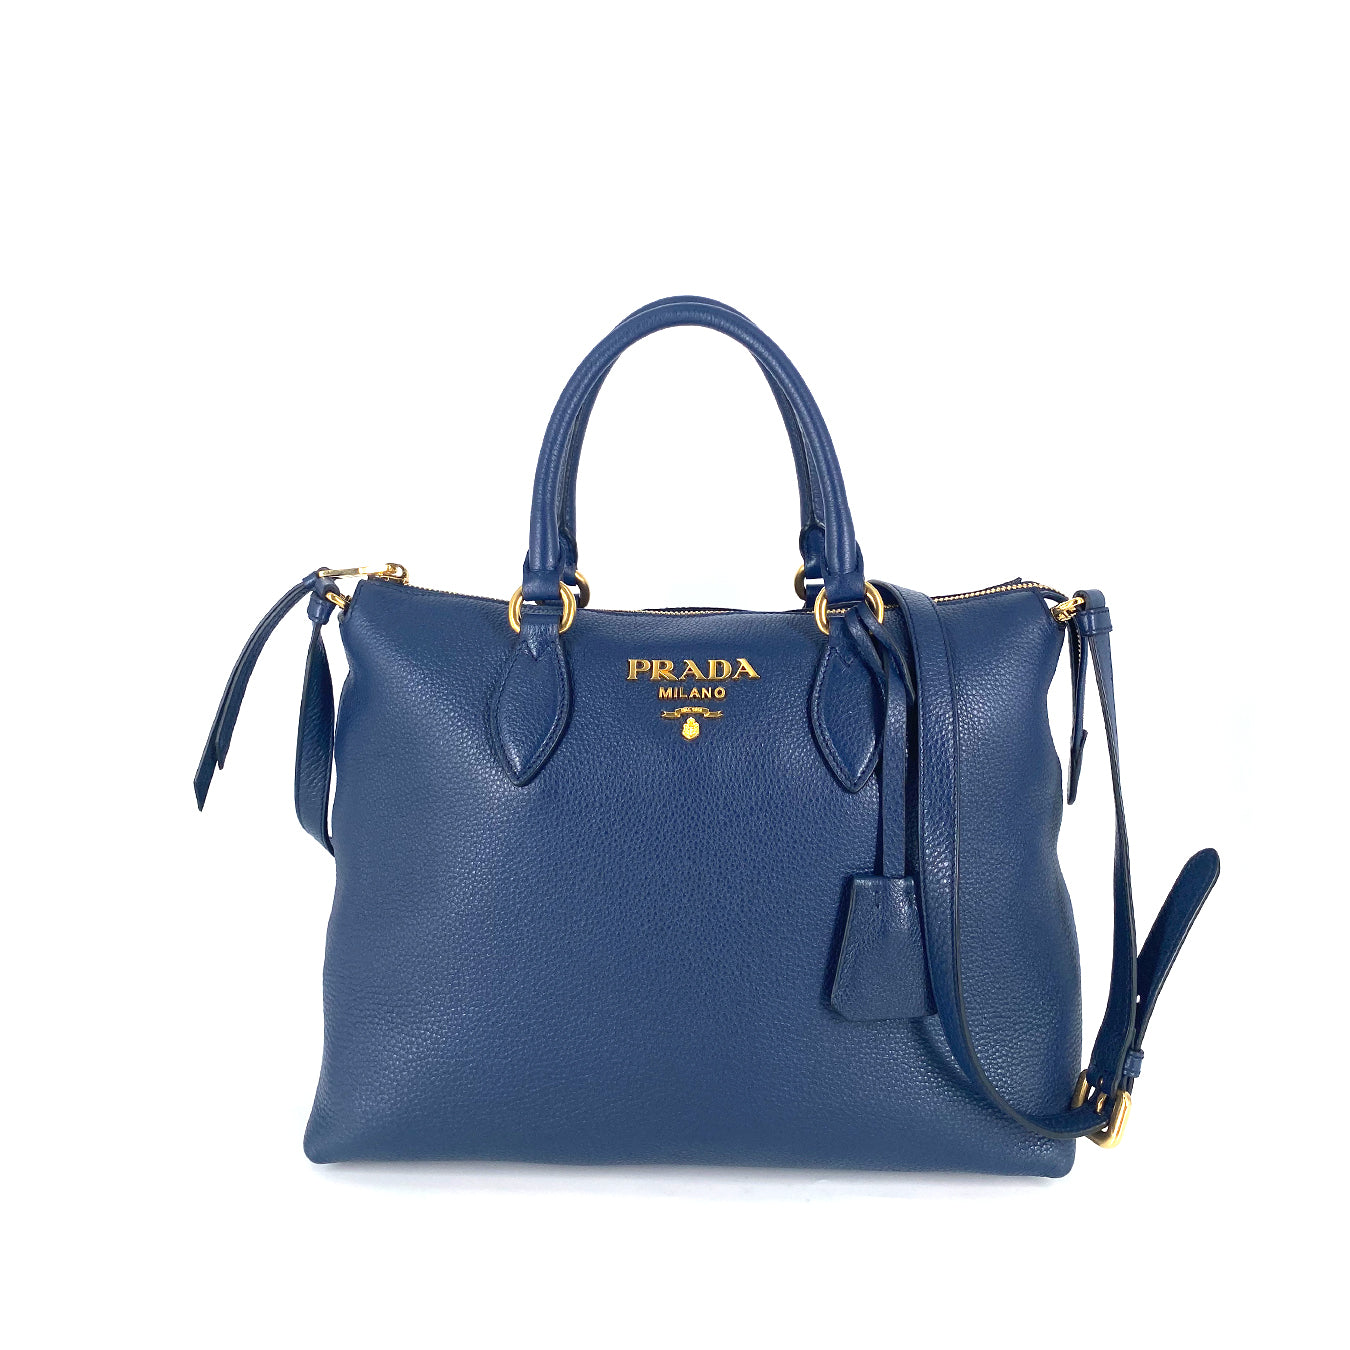 Prada 1BA063 Borsa Amano Vitello Phenix Tote Leather Baltico